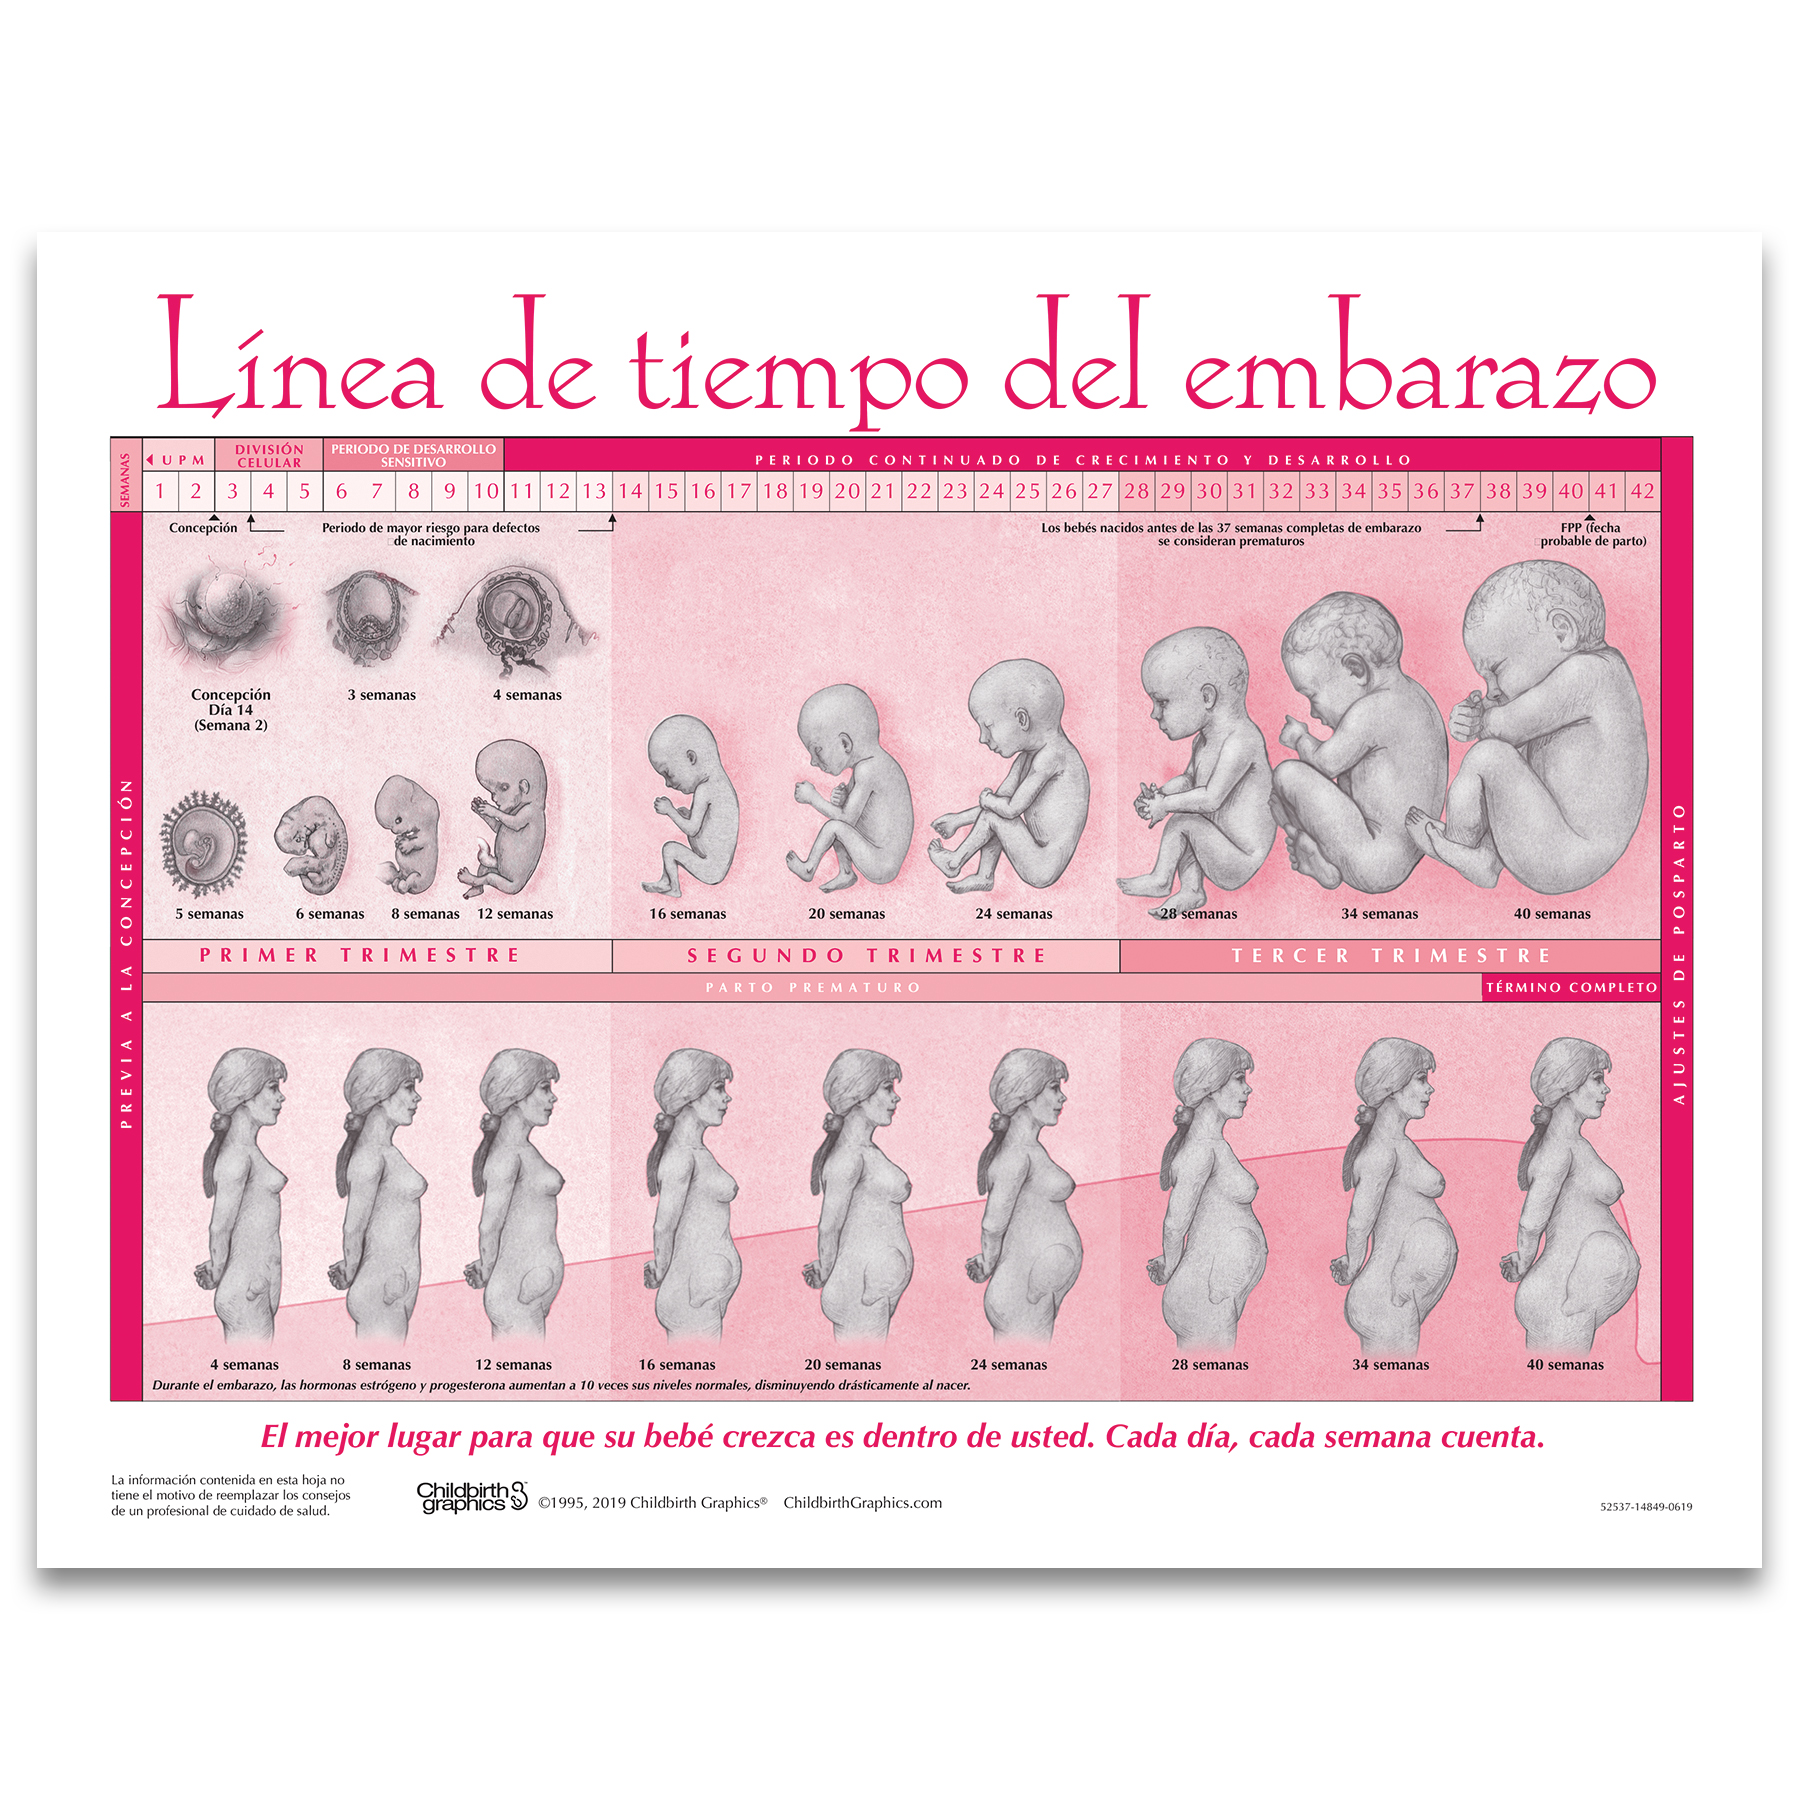 Timeline of Pregnancy childbirth education tear pad in Spanish from Childbirth Graphics showing fetal development, 52537